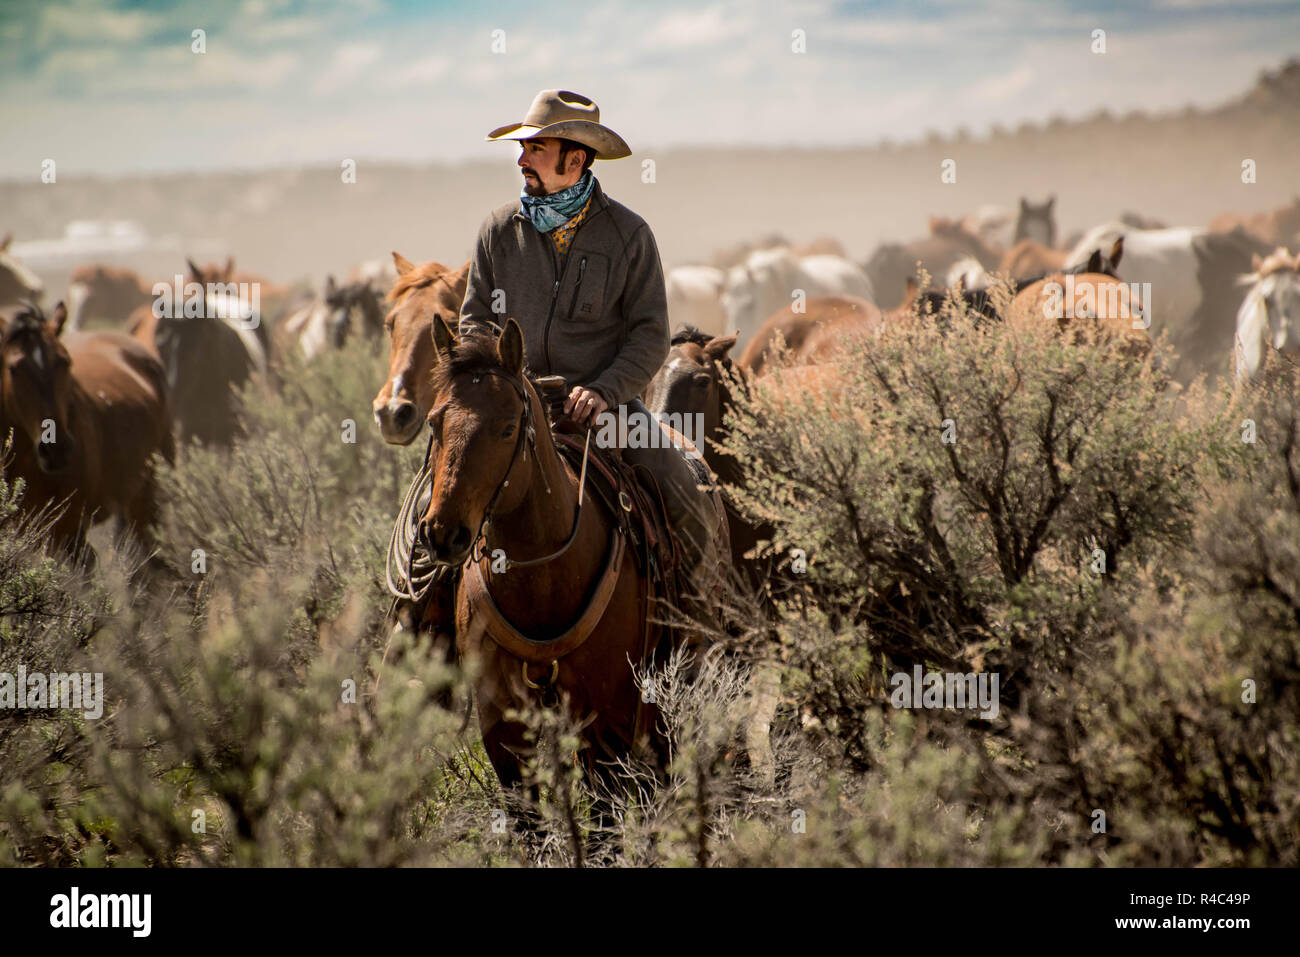 Cowboy wrangler with white hat leading horse herd through sagebrush prairie during a dusty trail drive roundup Stock Photo